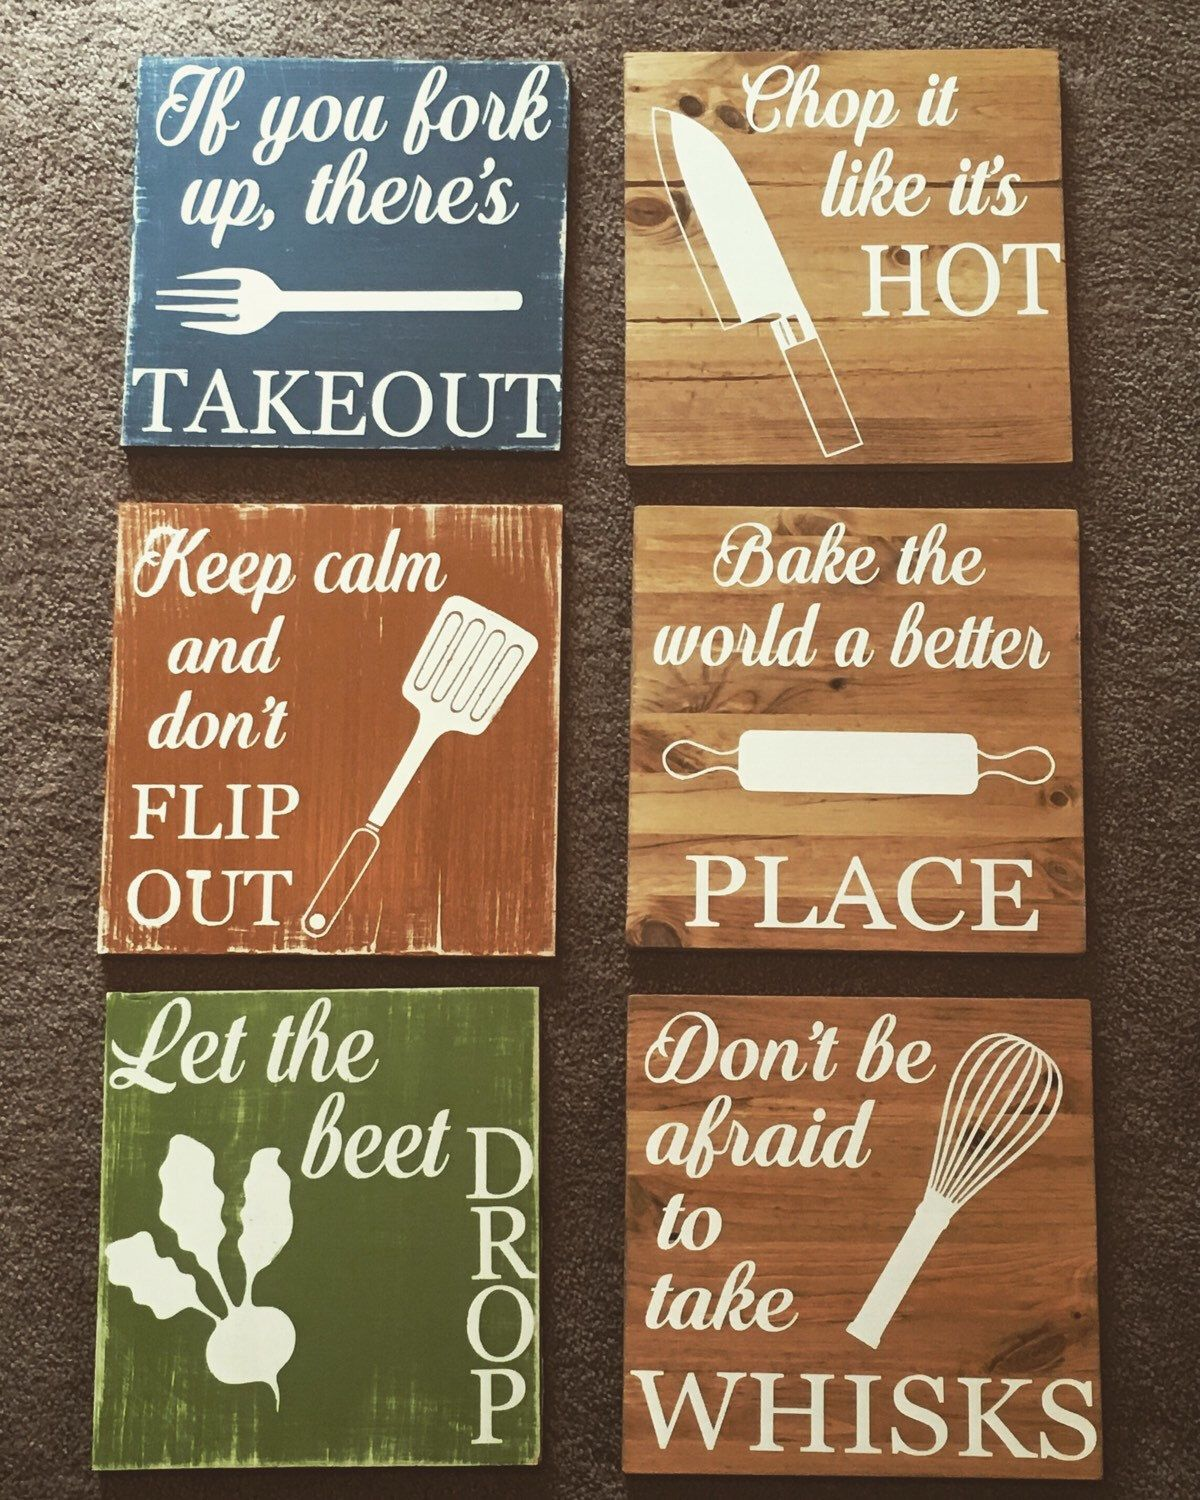 Chop It Like S Hot Funny Kitchen Signs Decor Rustic